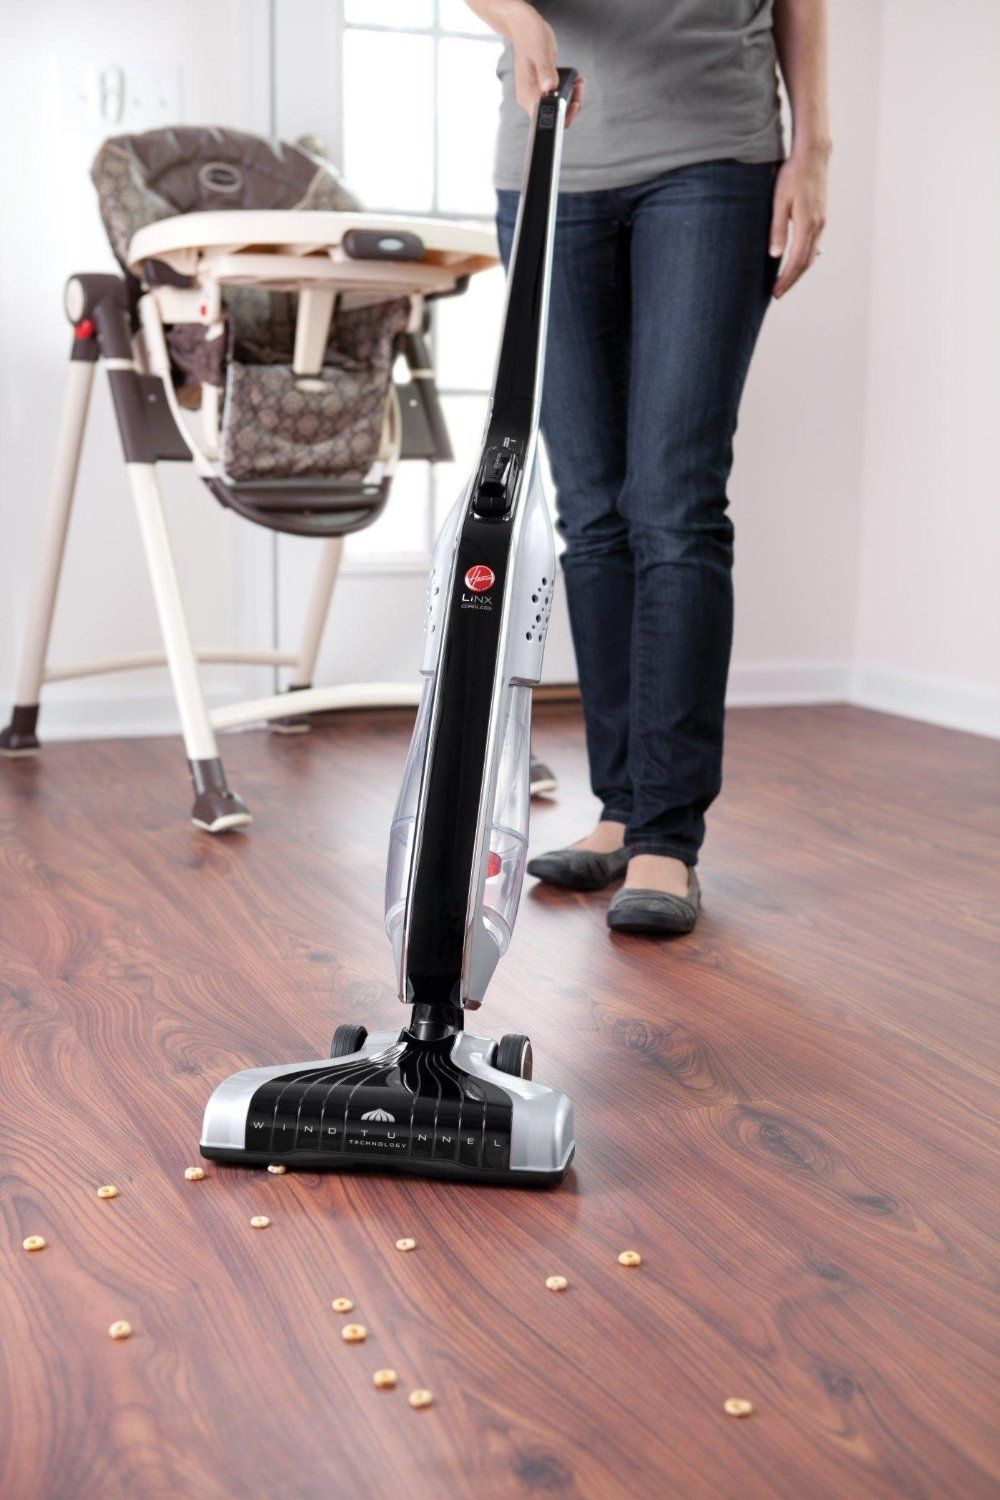 Best Electric Sweeper For Hardwood Floors Electric Broom Stick